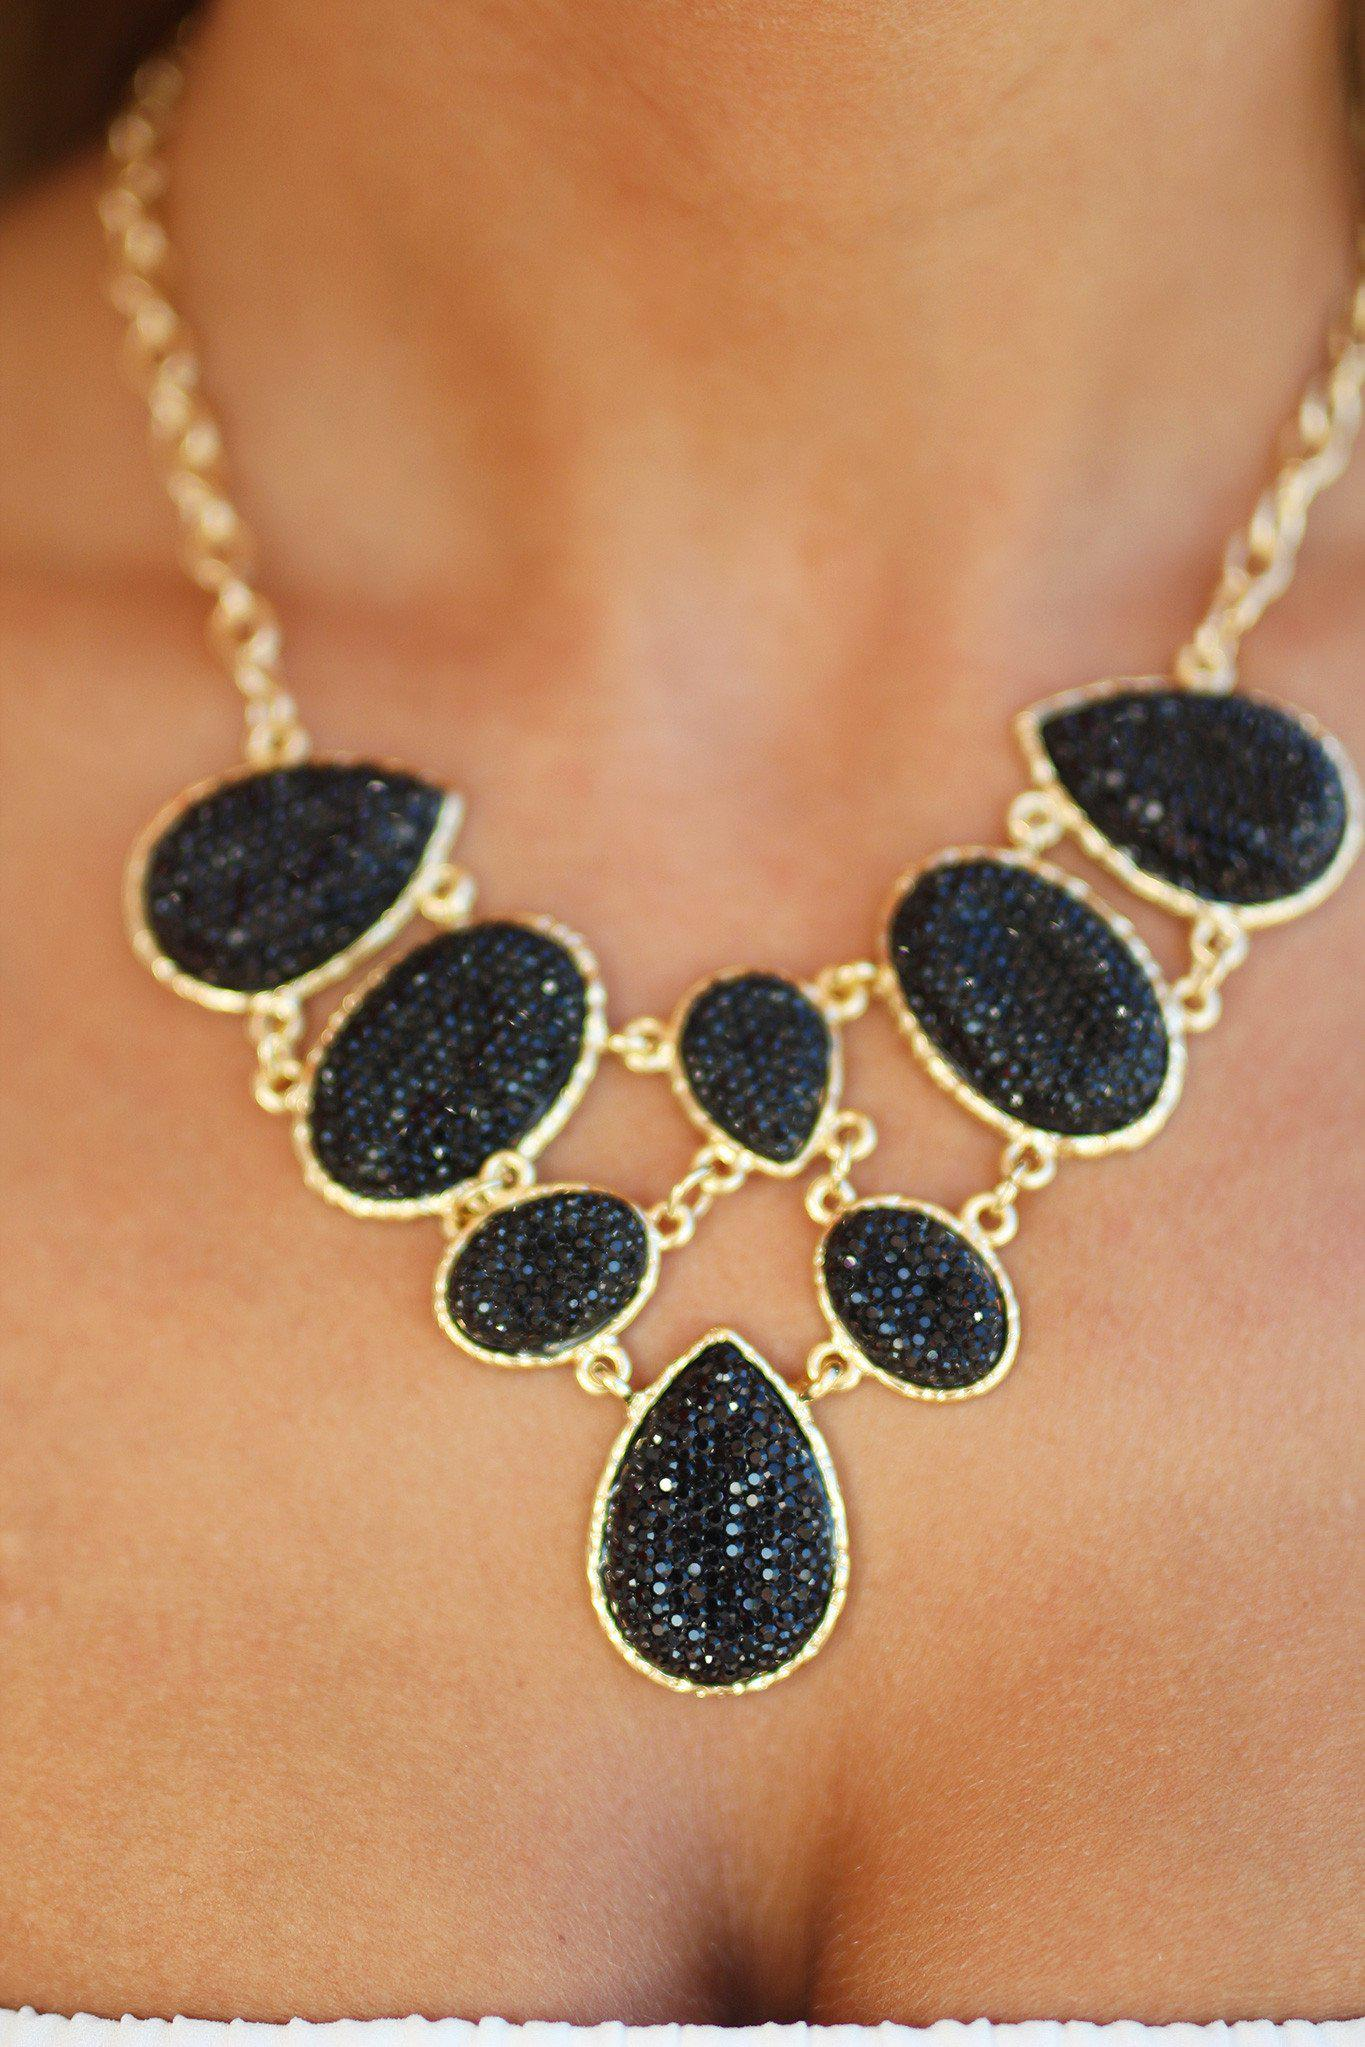 Black and Gold Stone Necklace